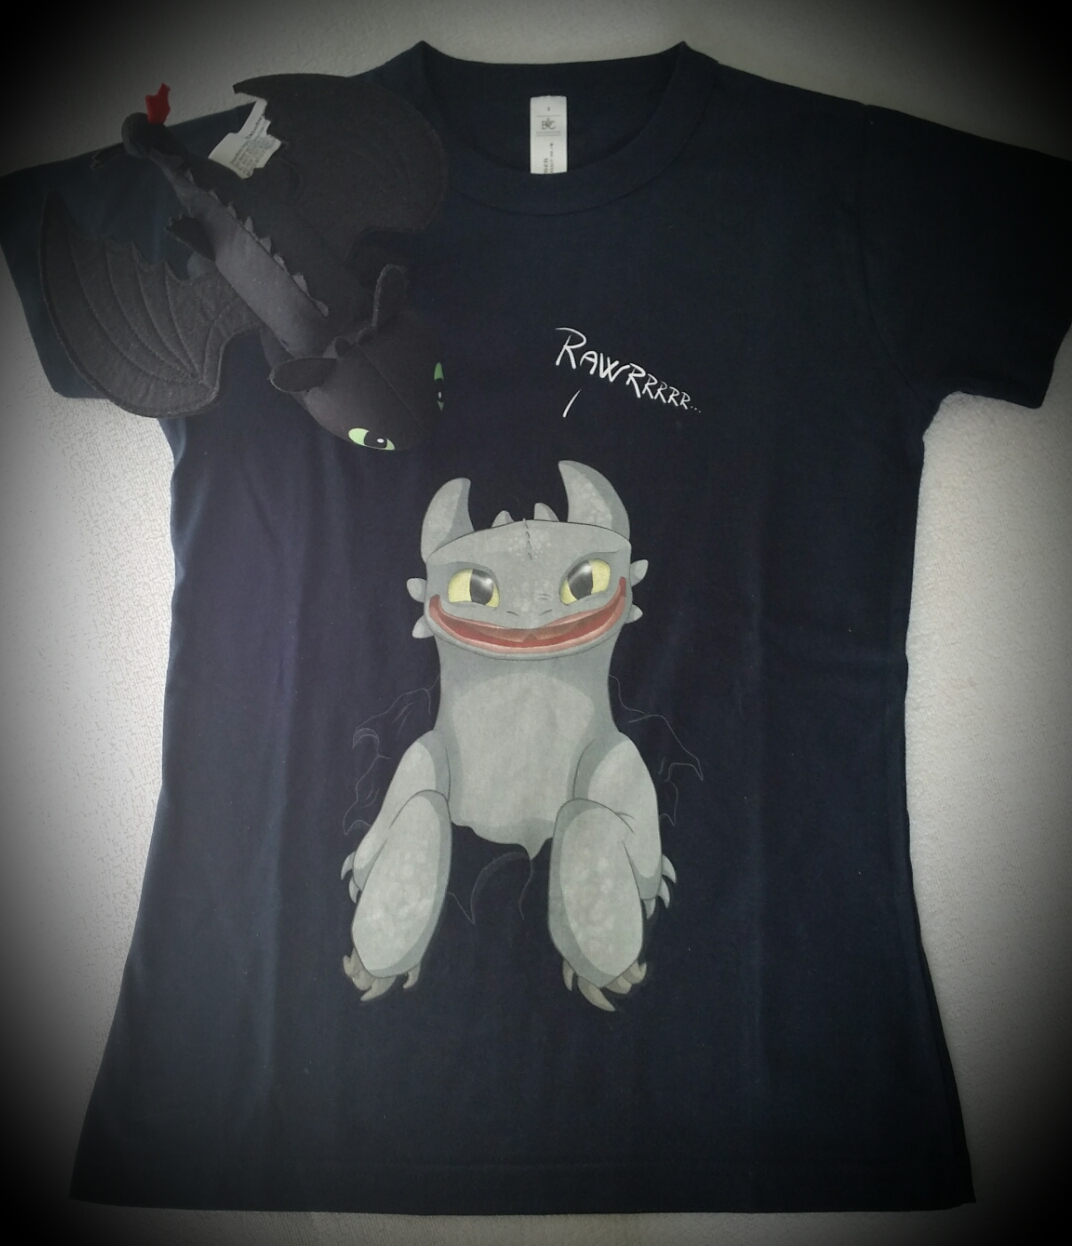 My Toothless t-shirt